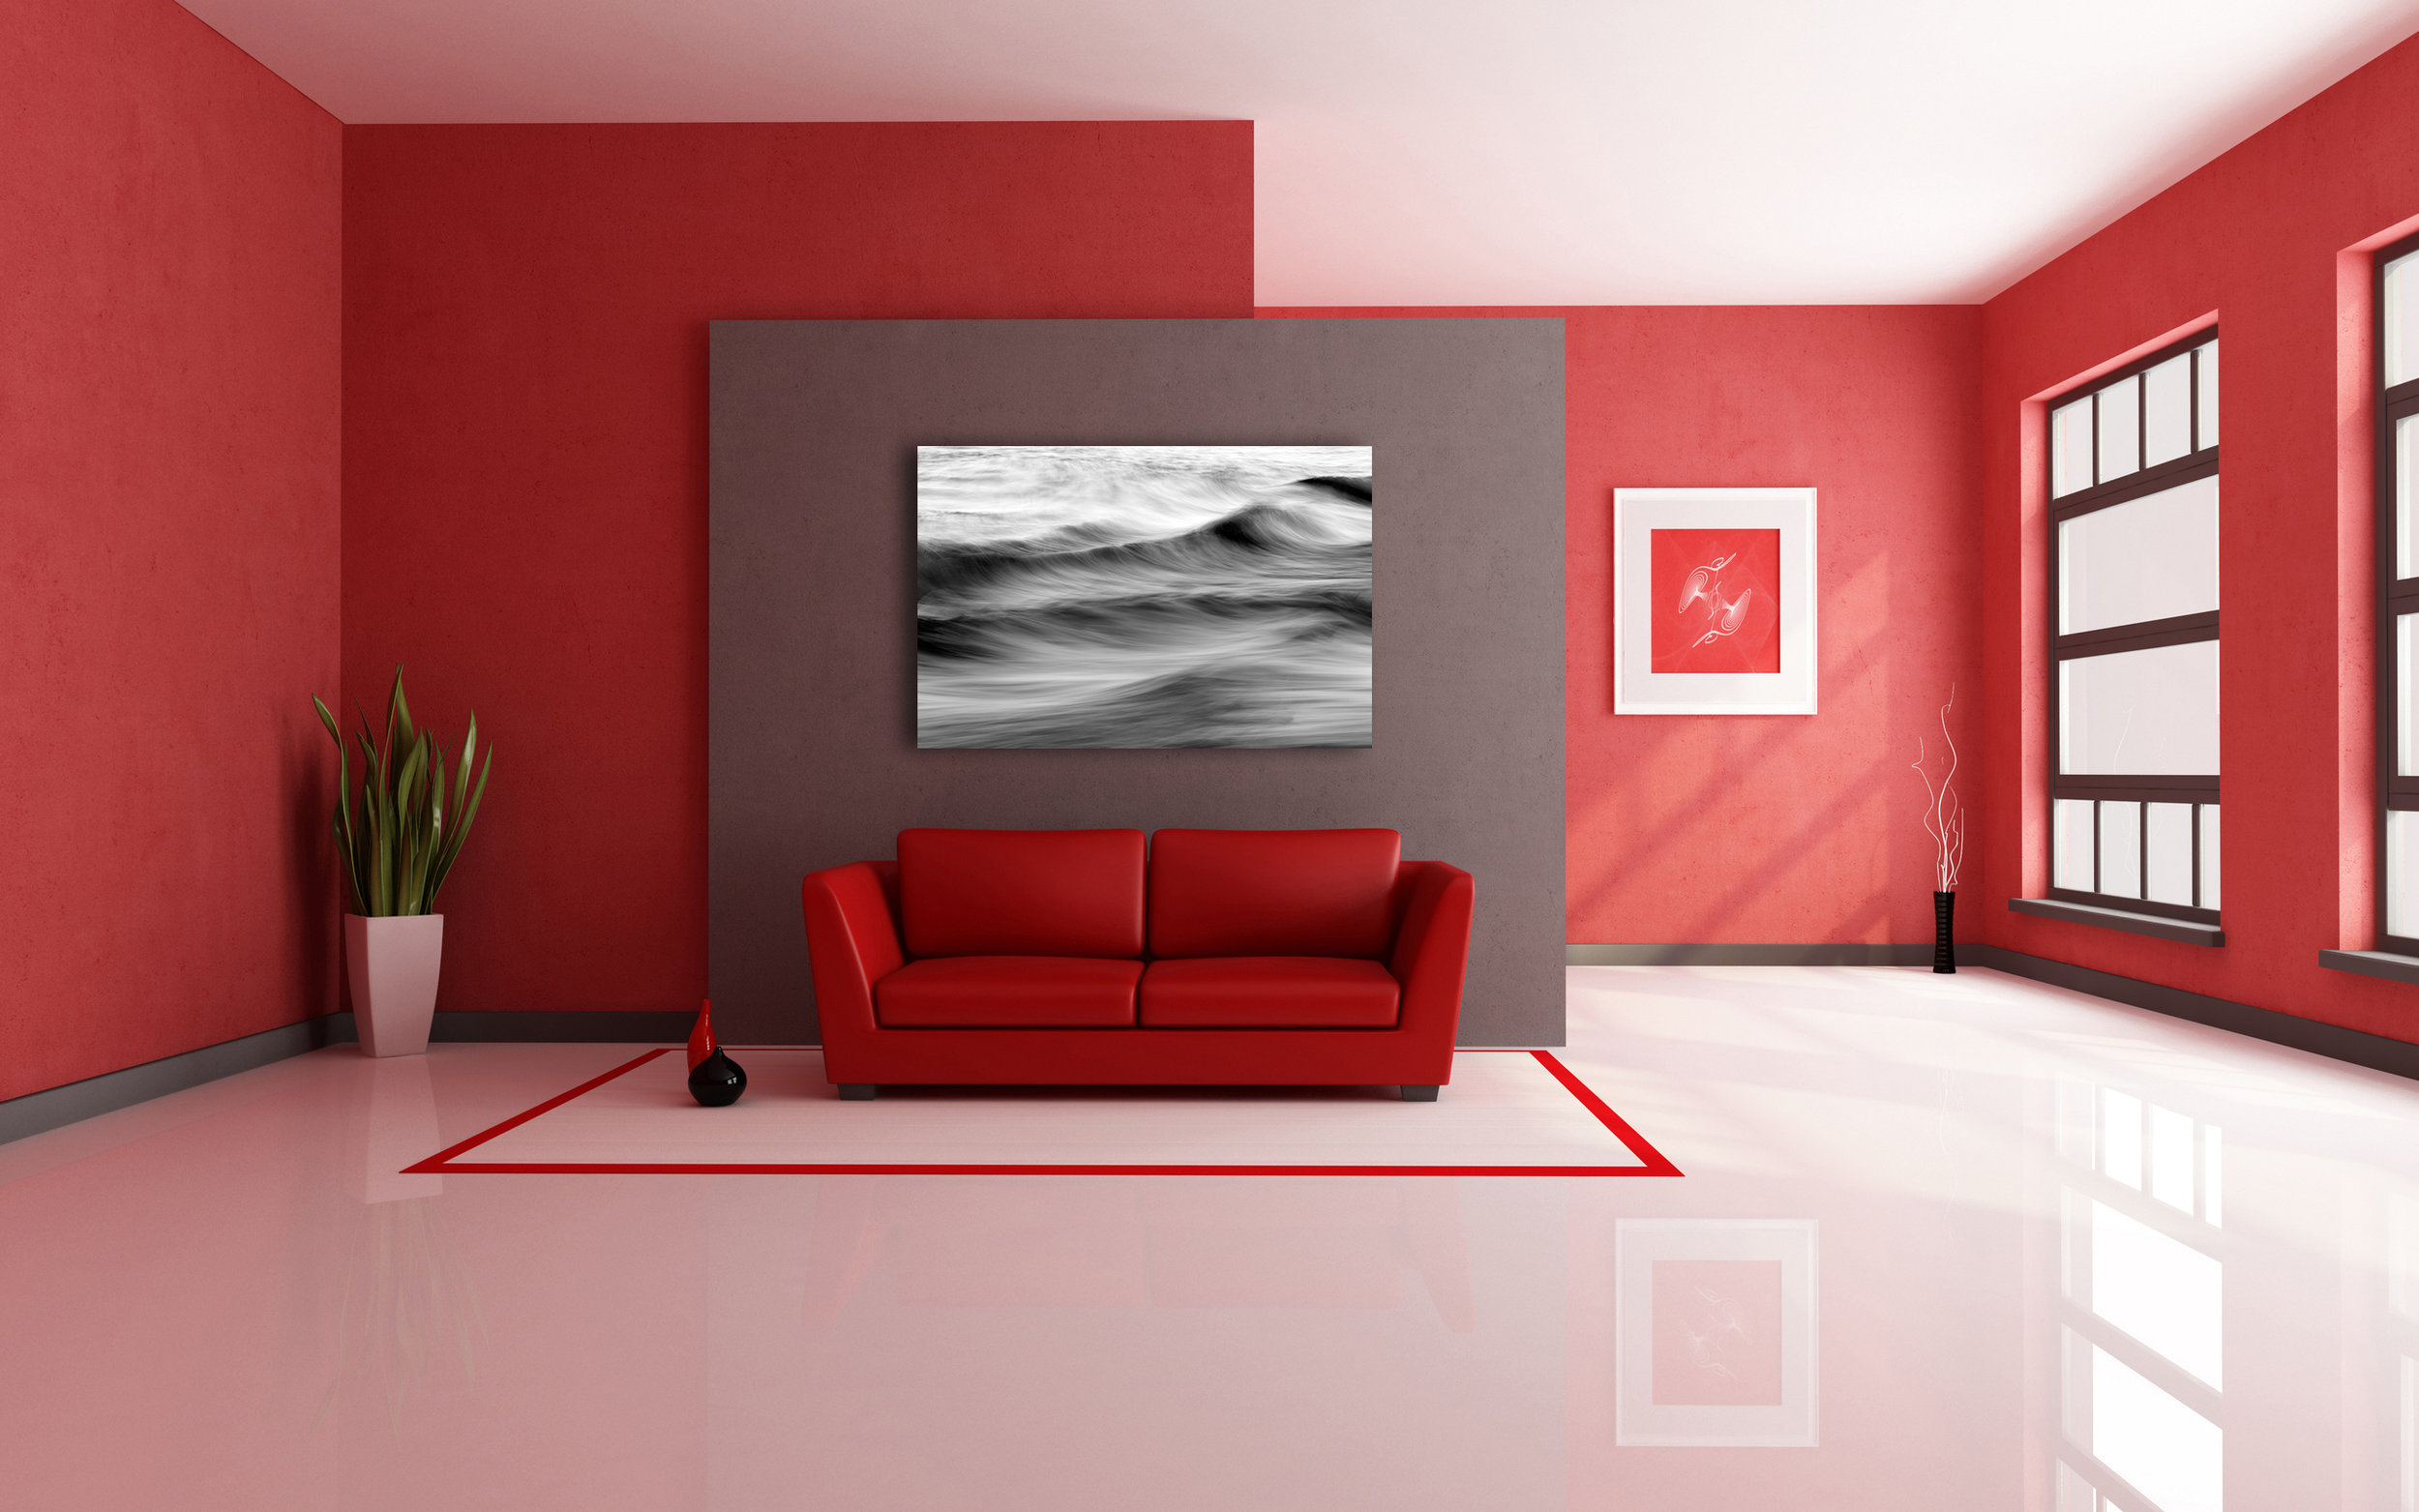 home-interior-paint-walls-ideas-on-wall-painting-for.jpg